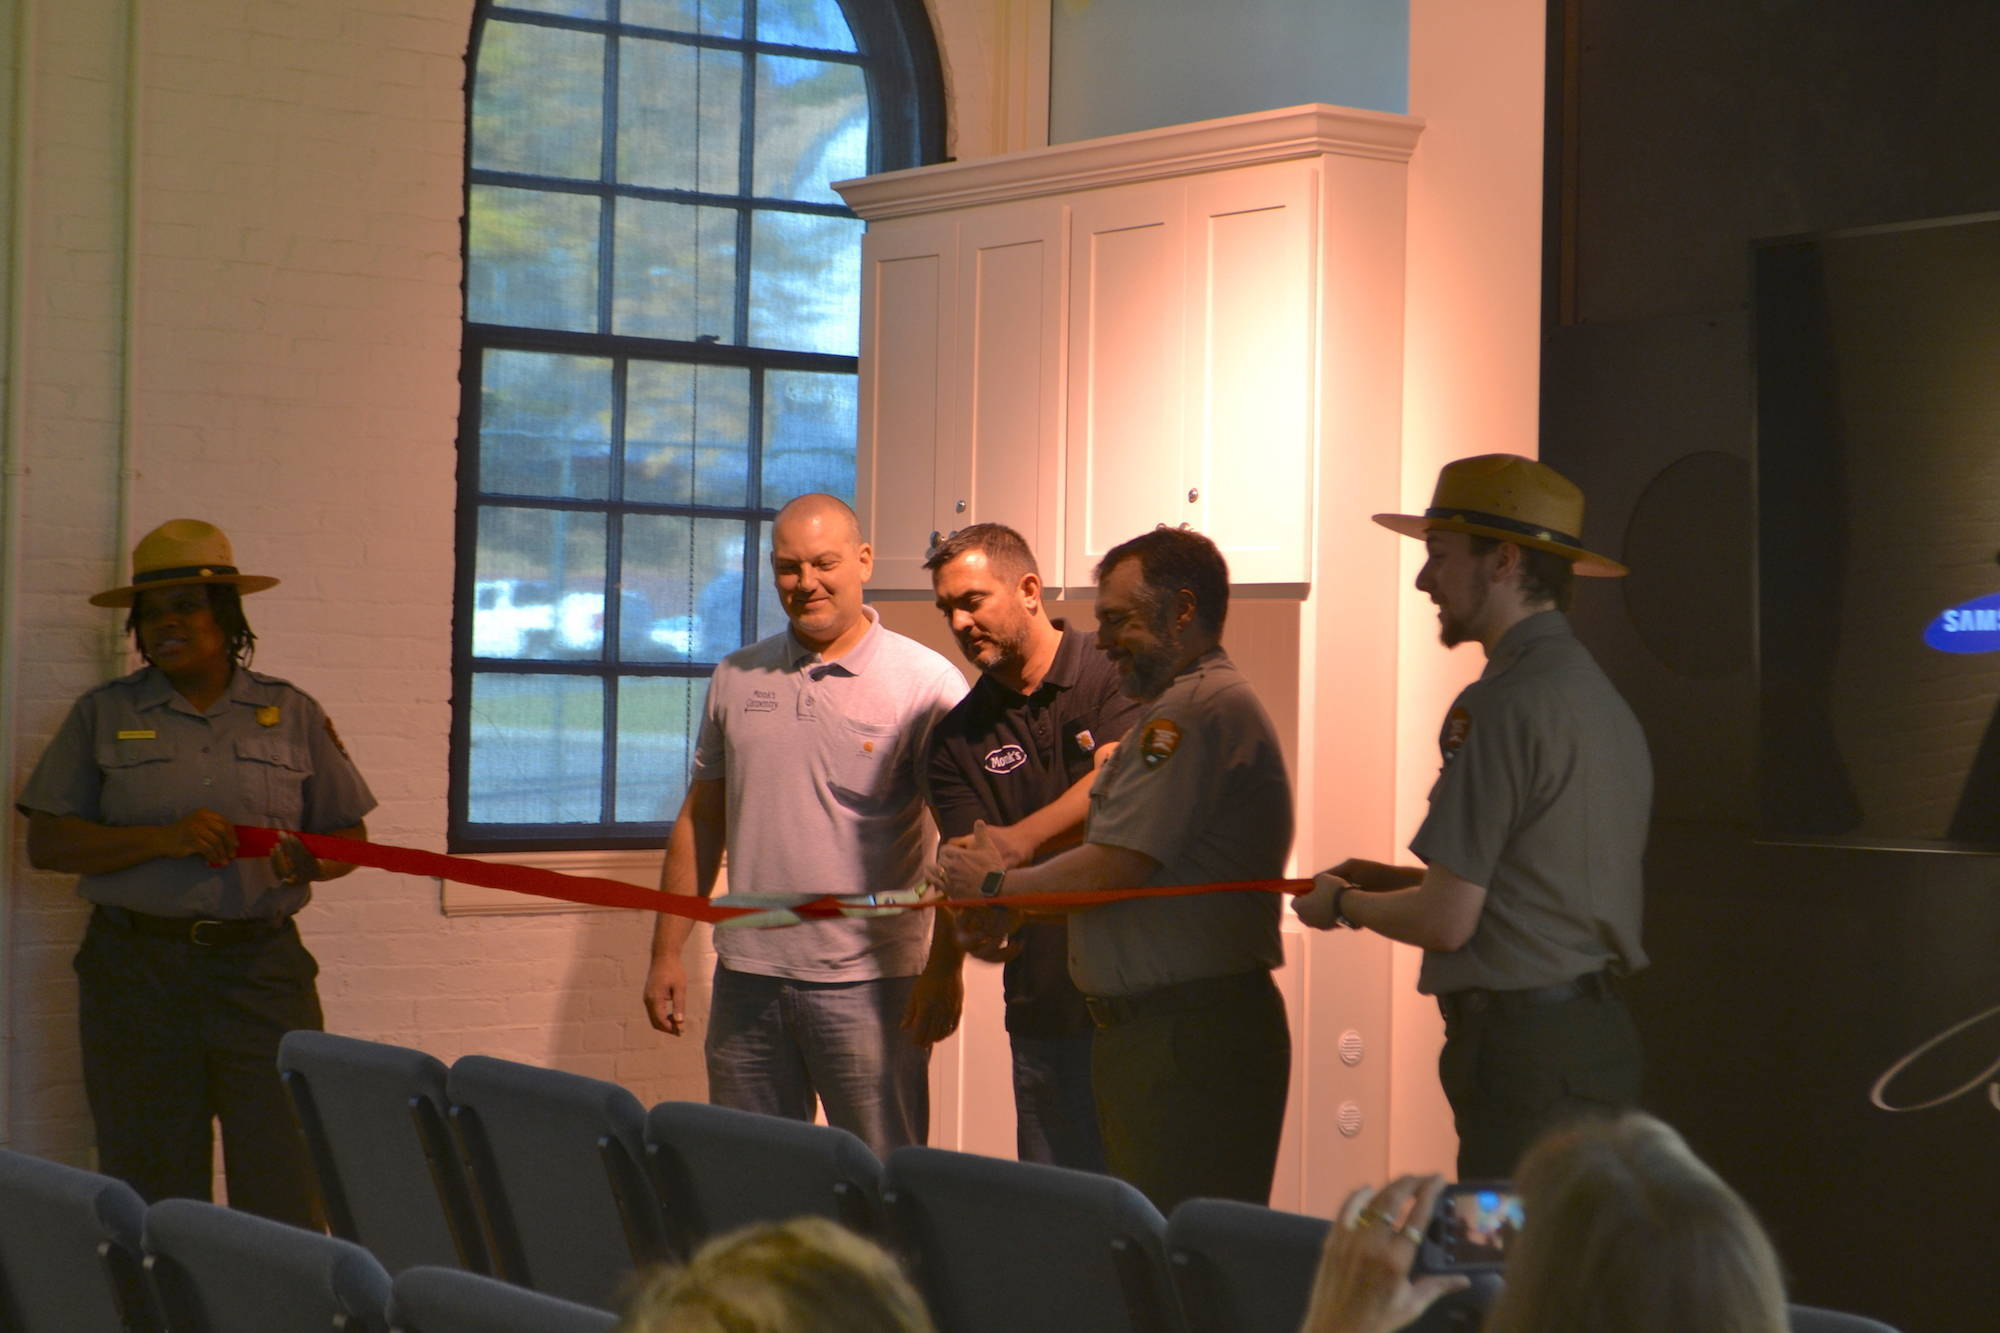 f0bb80487375a0c411ab_Trevor_Cutting_Ribbon.JPG